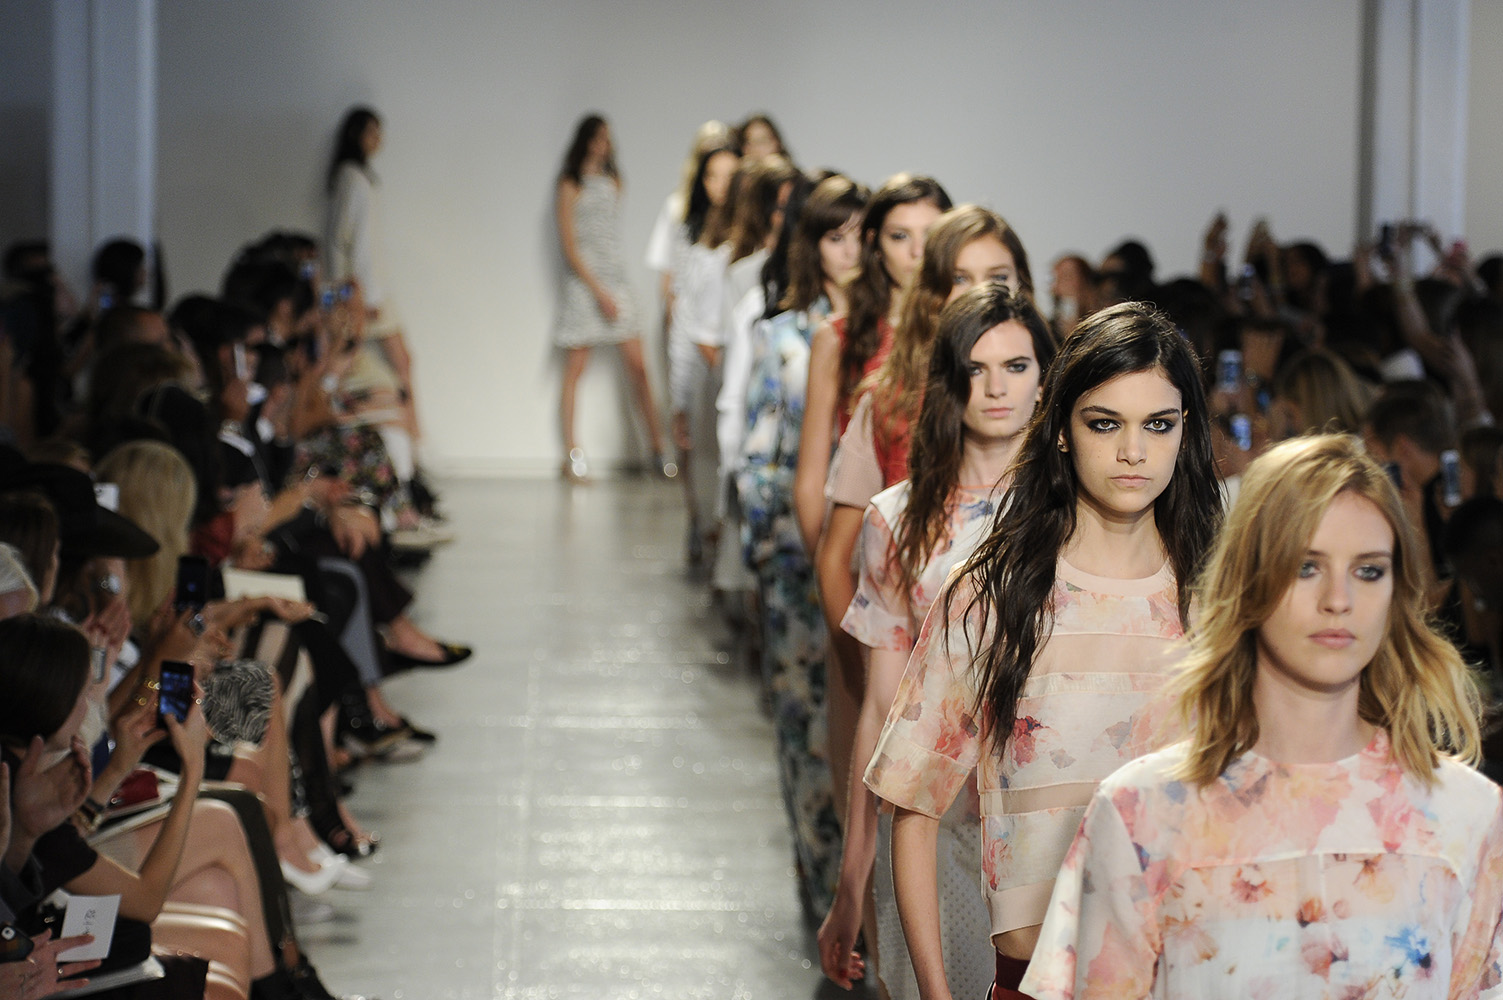 New York Fashion Week inspires affordable looks